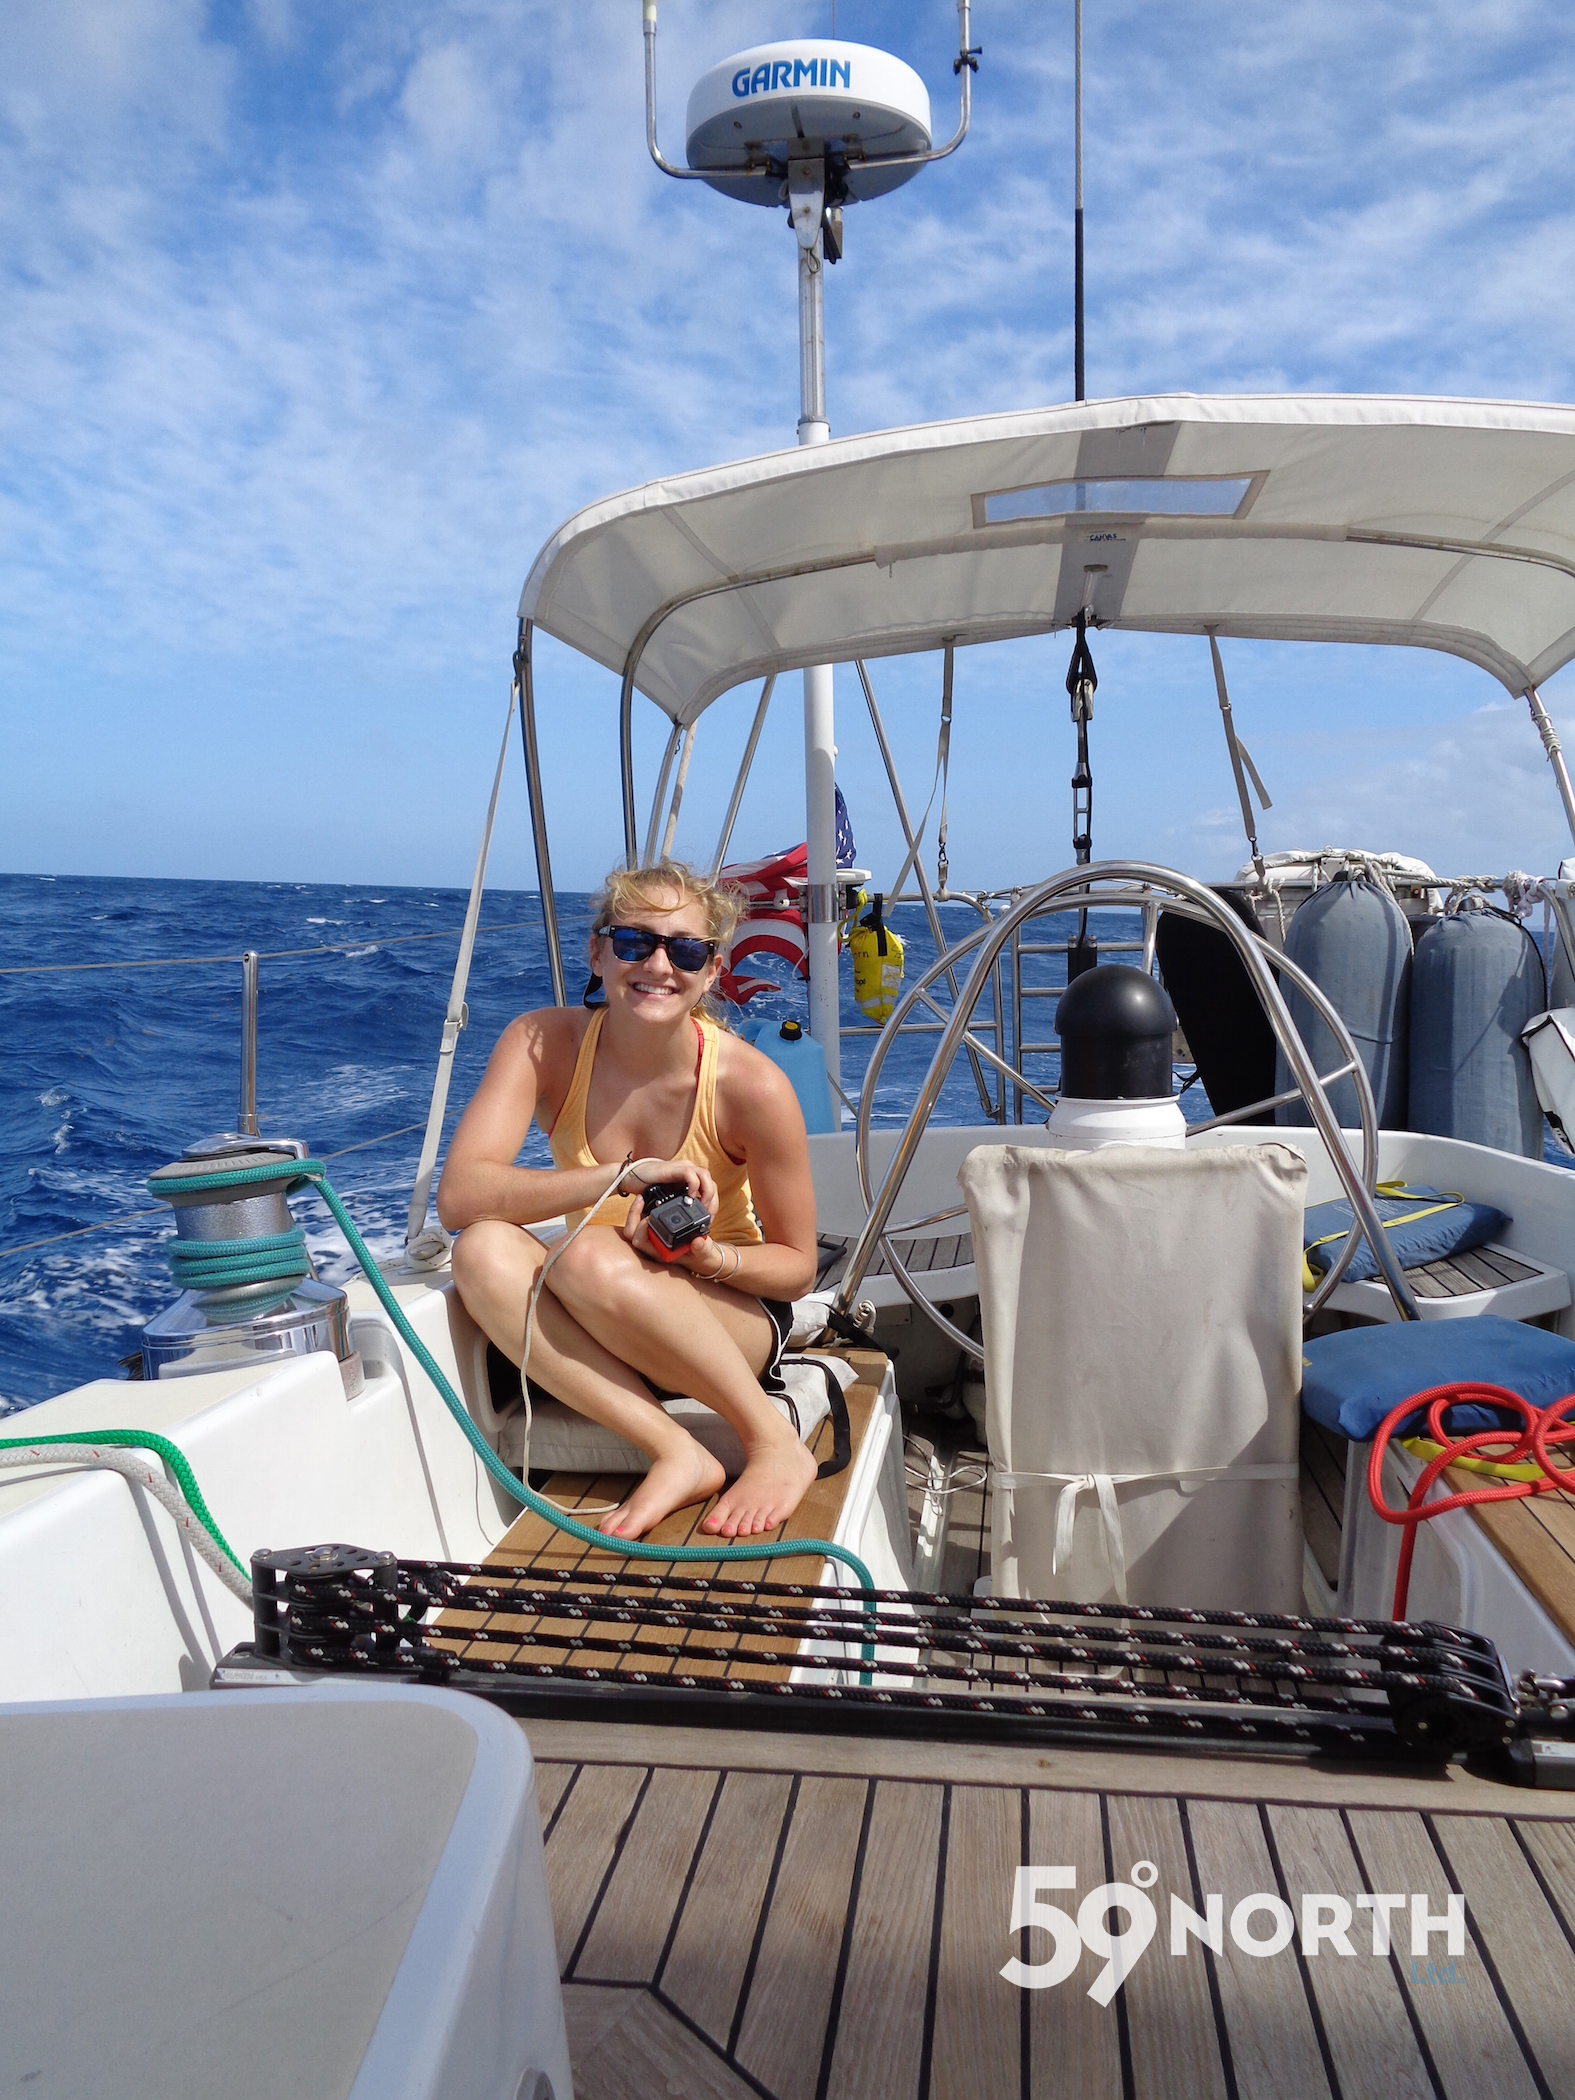 Our intern Liz joined Isbjorn for the first time in Antigua, and sailed with us to Puerto Rico via St. Martin. March 2016